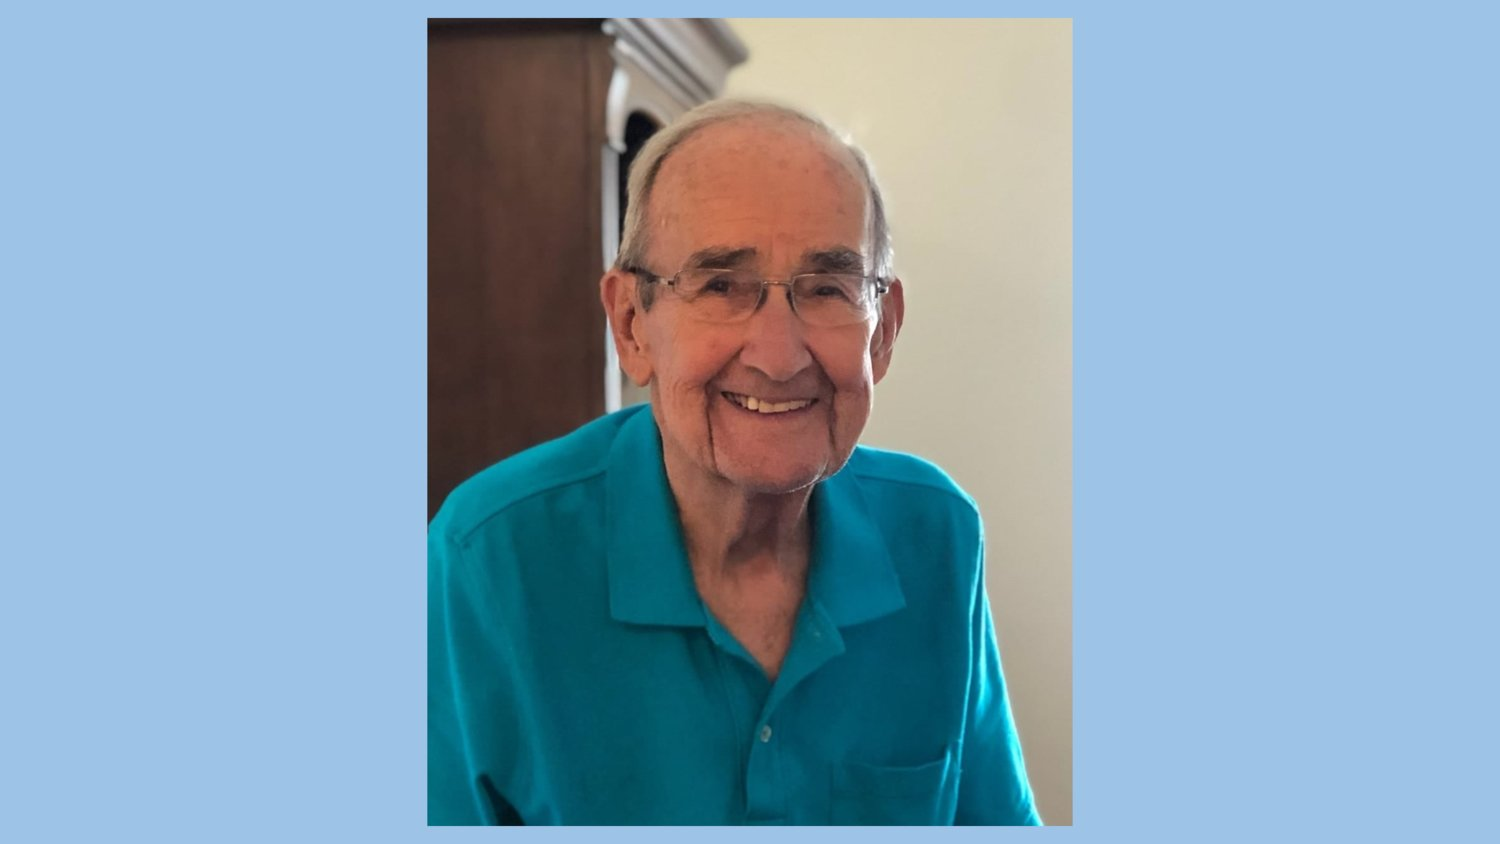 Korean War veteran, insurance professional, husband and father, Hugh C. Gillis passed away Feb. 22. He leaves behind multiple children, nine grandchildren, three great-grandchildren and many other loved ones. He is deeply missed.